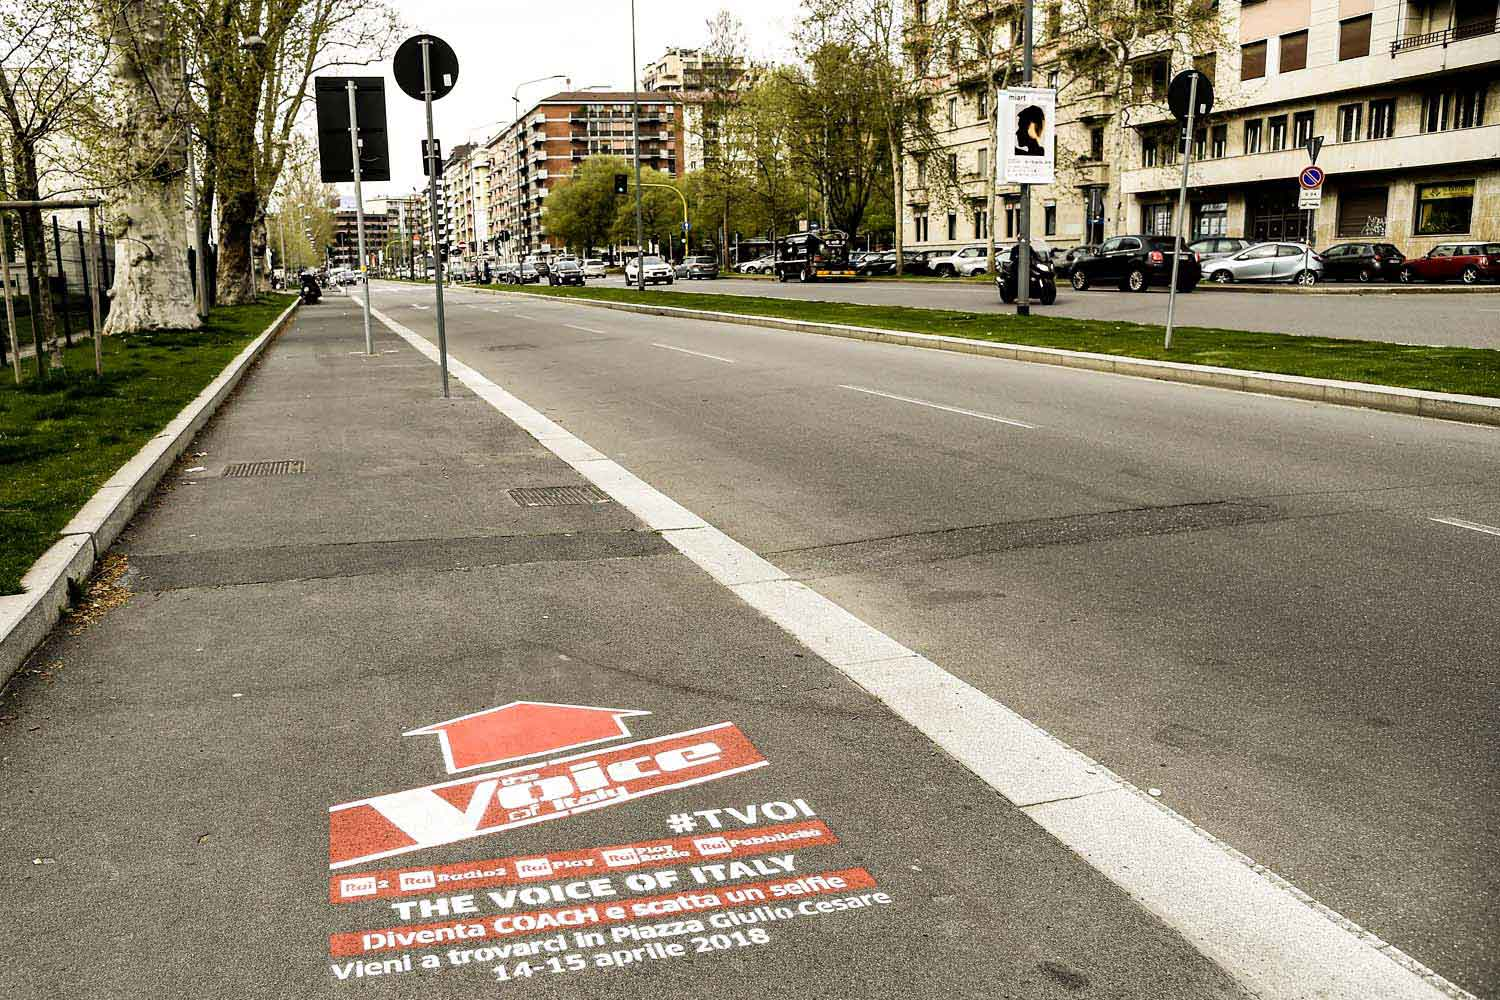 street advertisement rai the voice